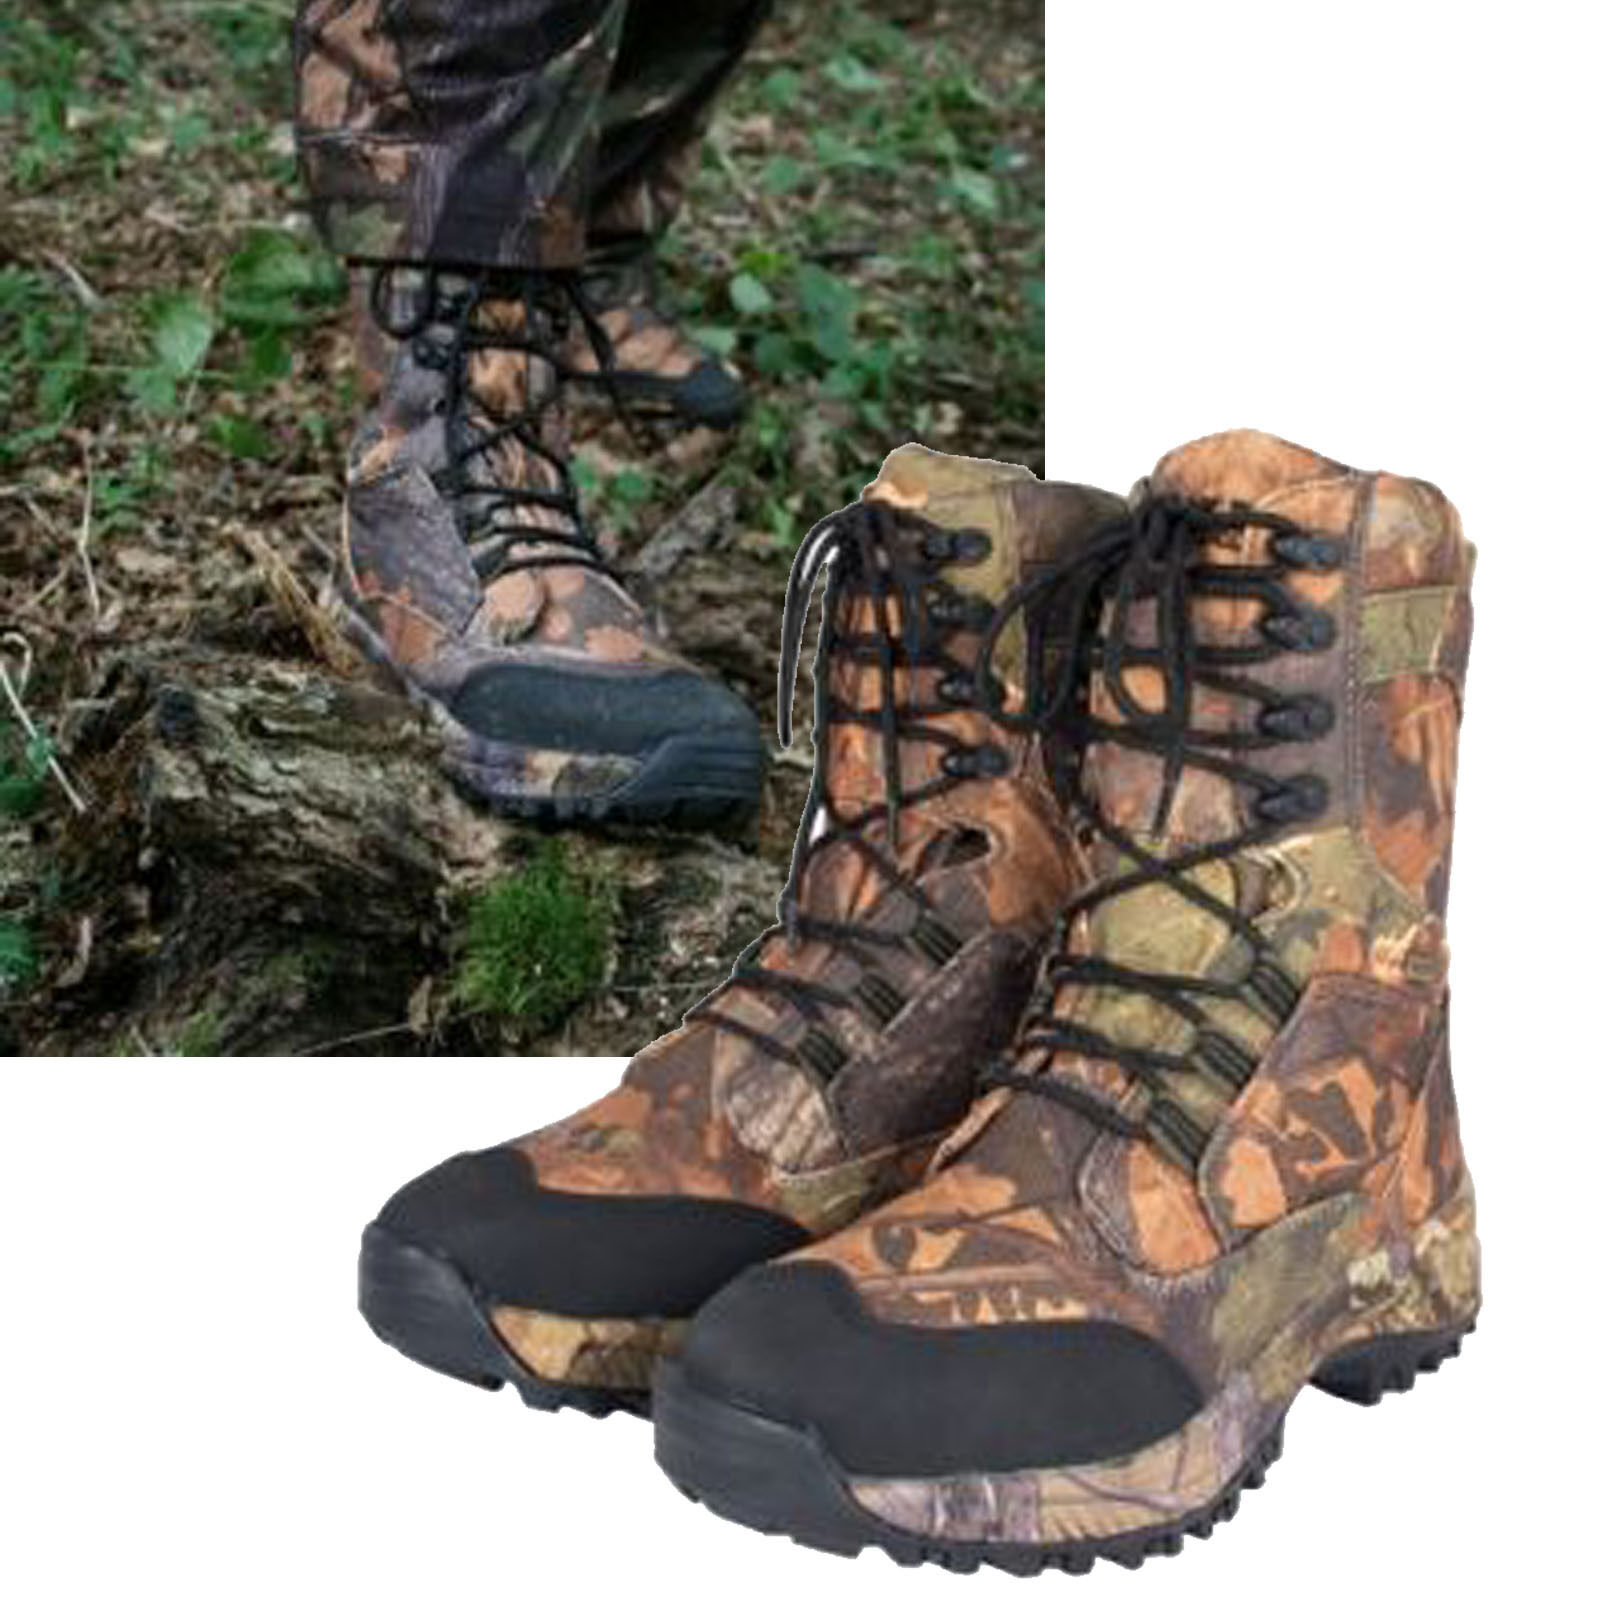 Jack Pyke Lightweight Tundra Thinsulate Insulated Stiefel Walking Shooting Fishing